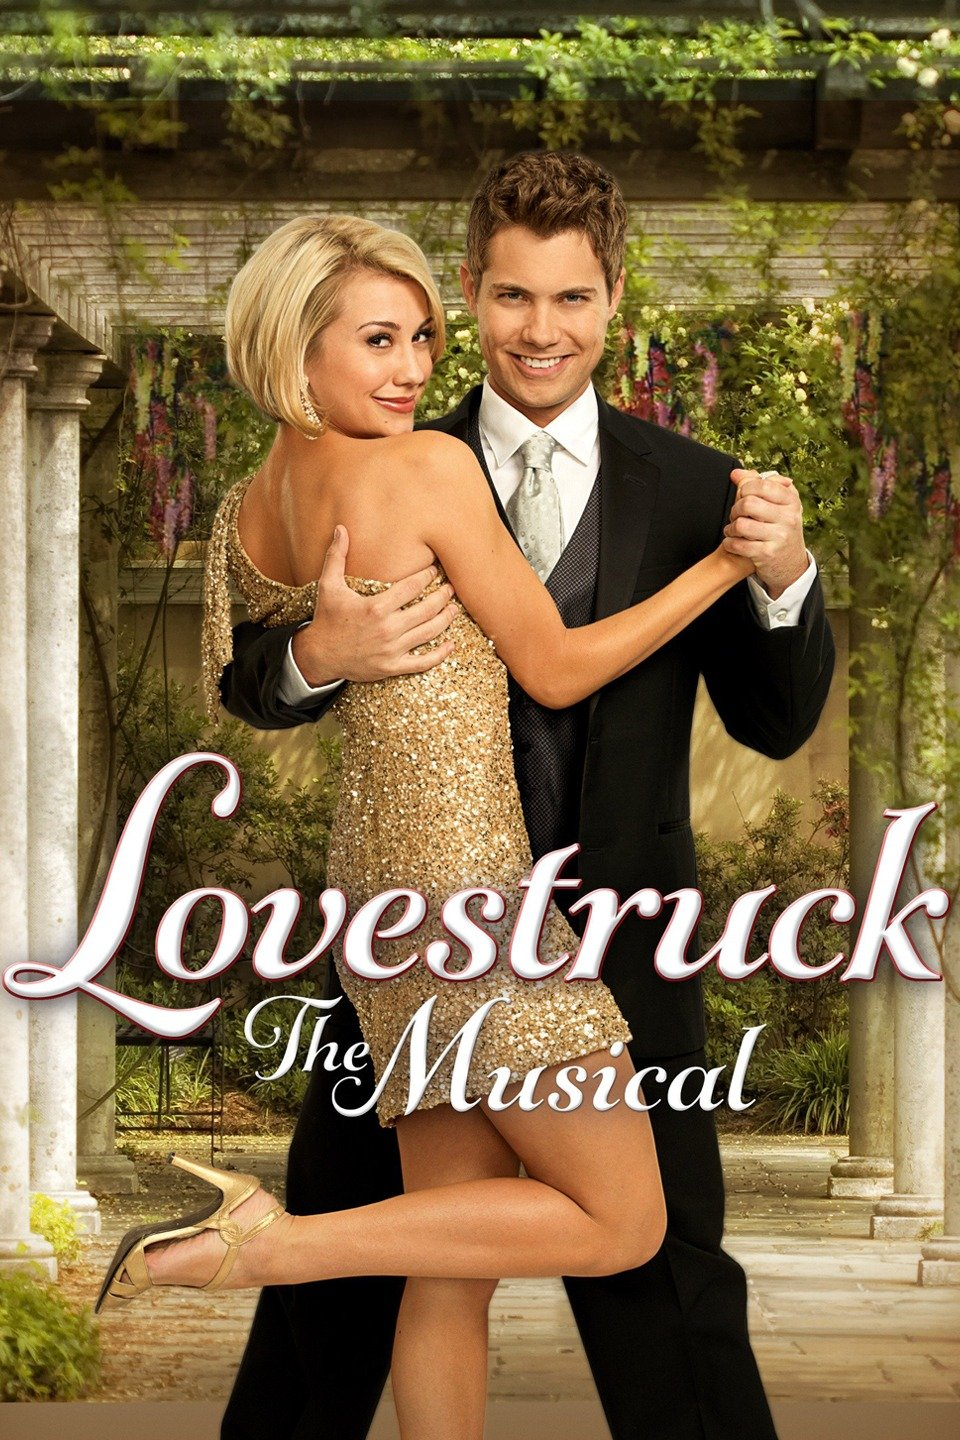 Lovestruck: The Musical (2013)